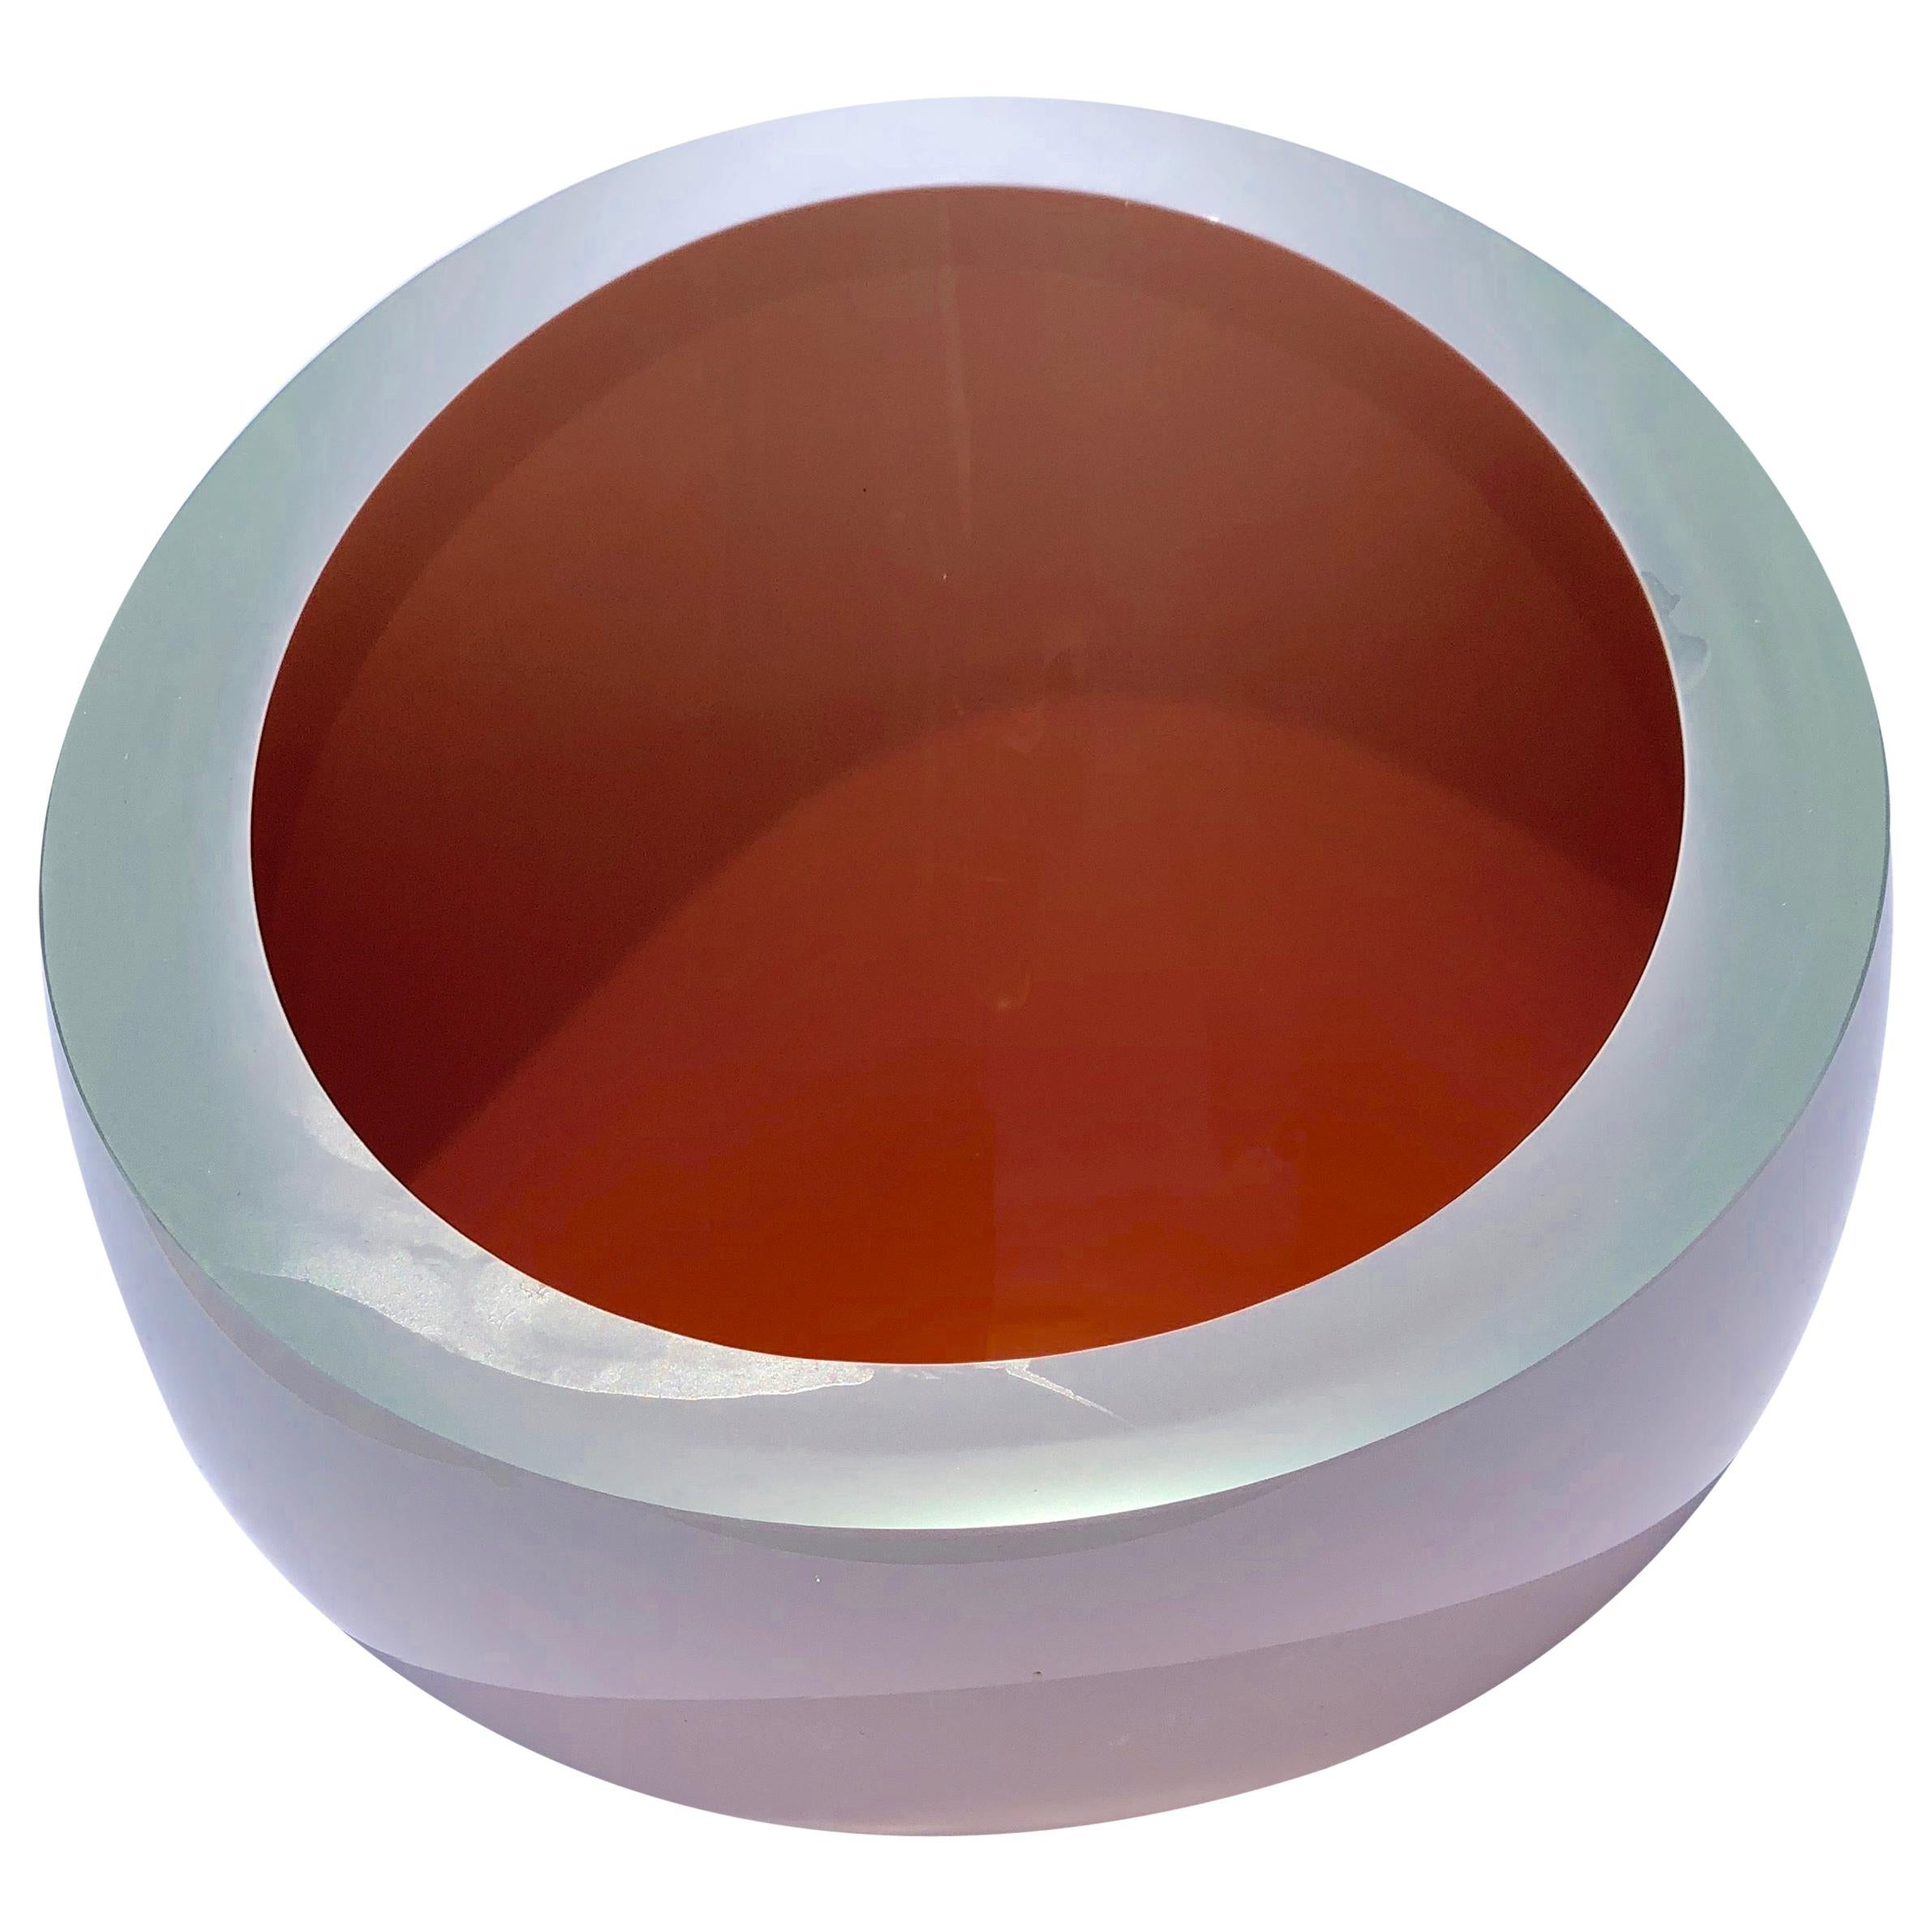 Contemporary Studio Glass Bowl in Coral Color, Made in the Czech Republic, 2010